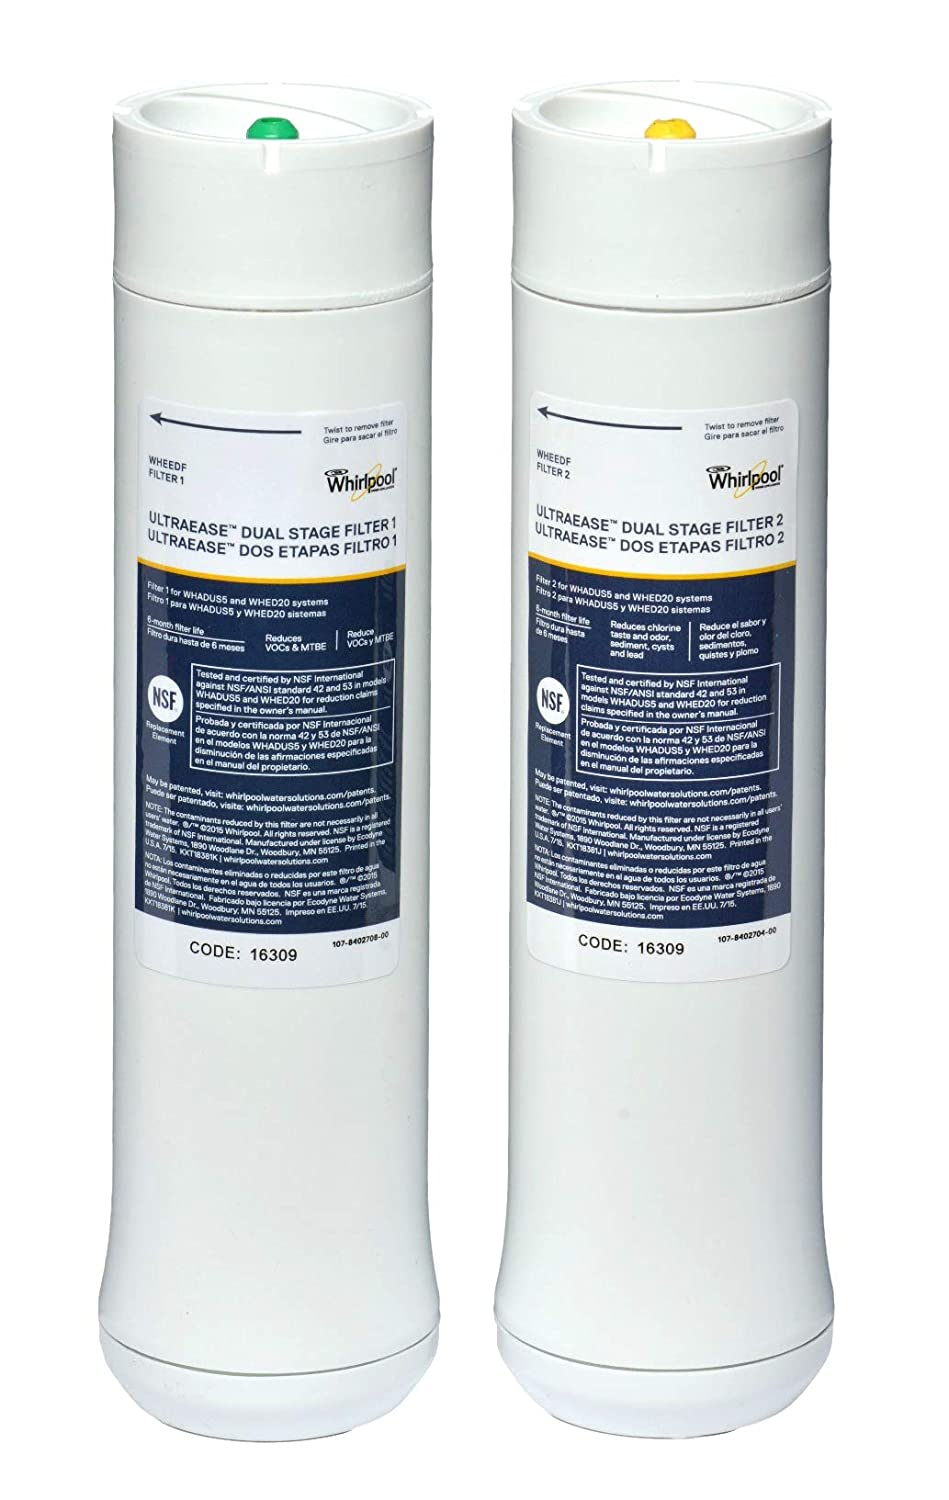 Whirlpool WHEEDF Dual Stage Ultraease Replacement Water Filters Genuine New